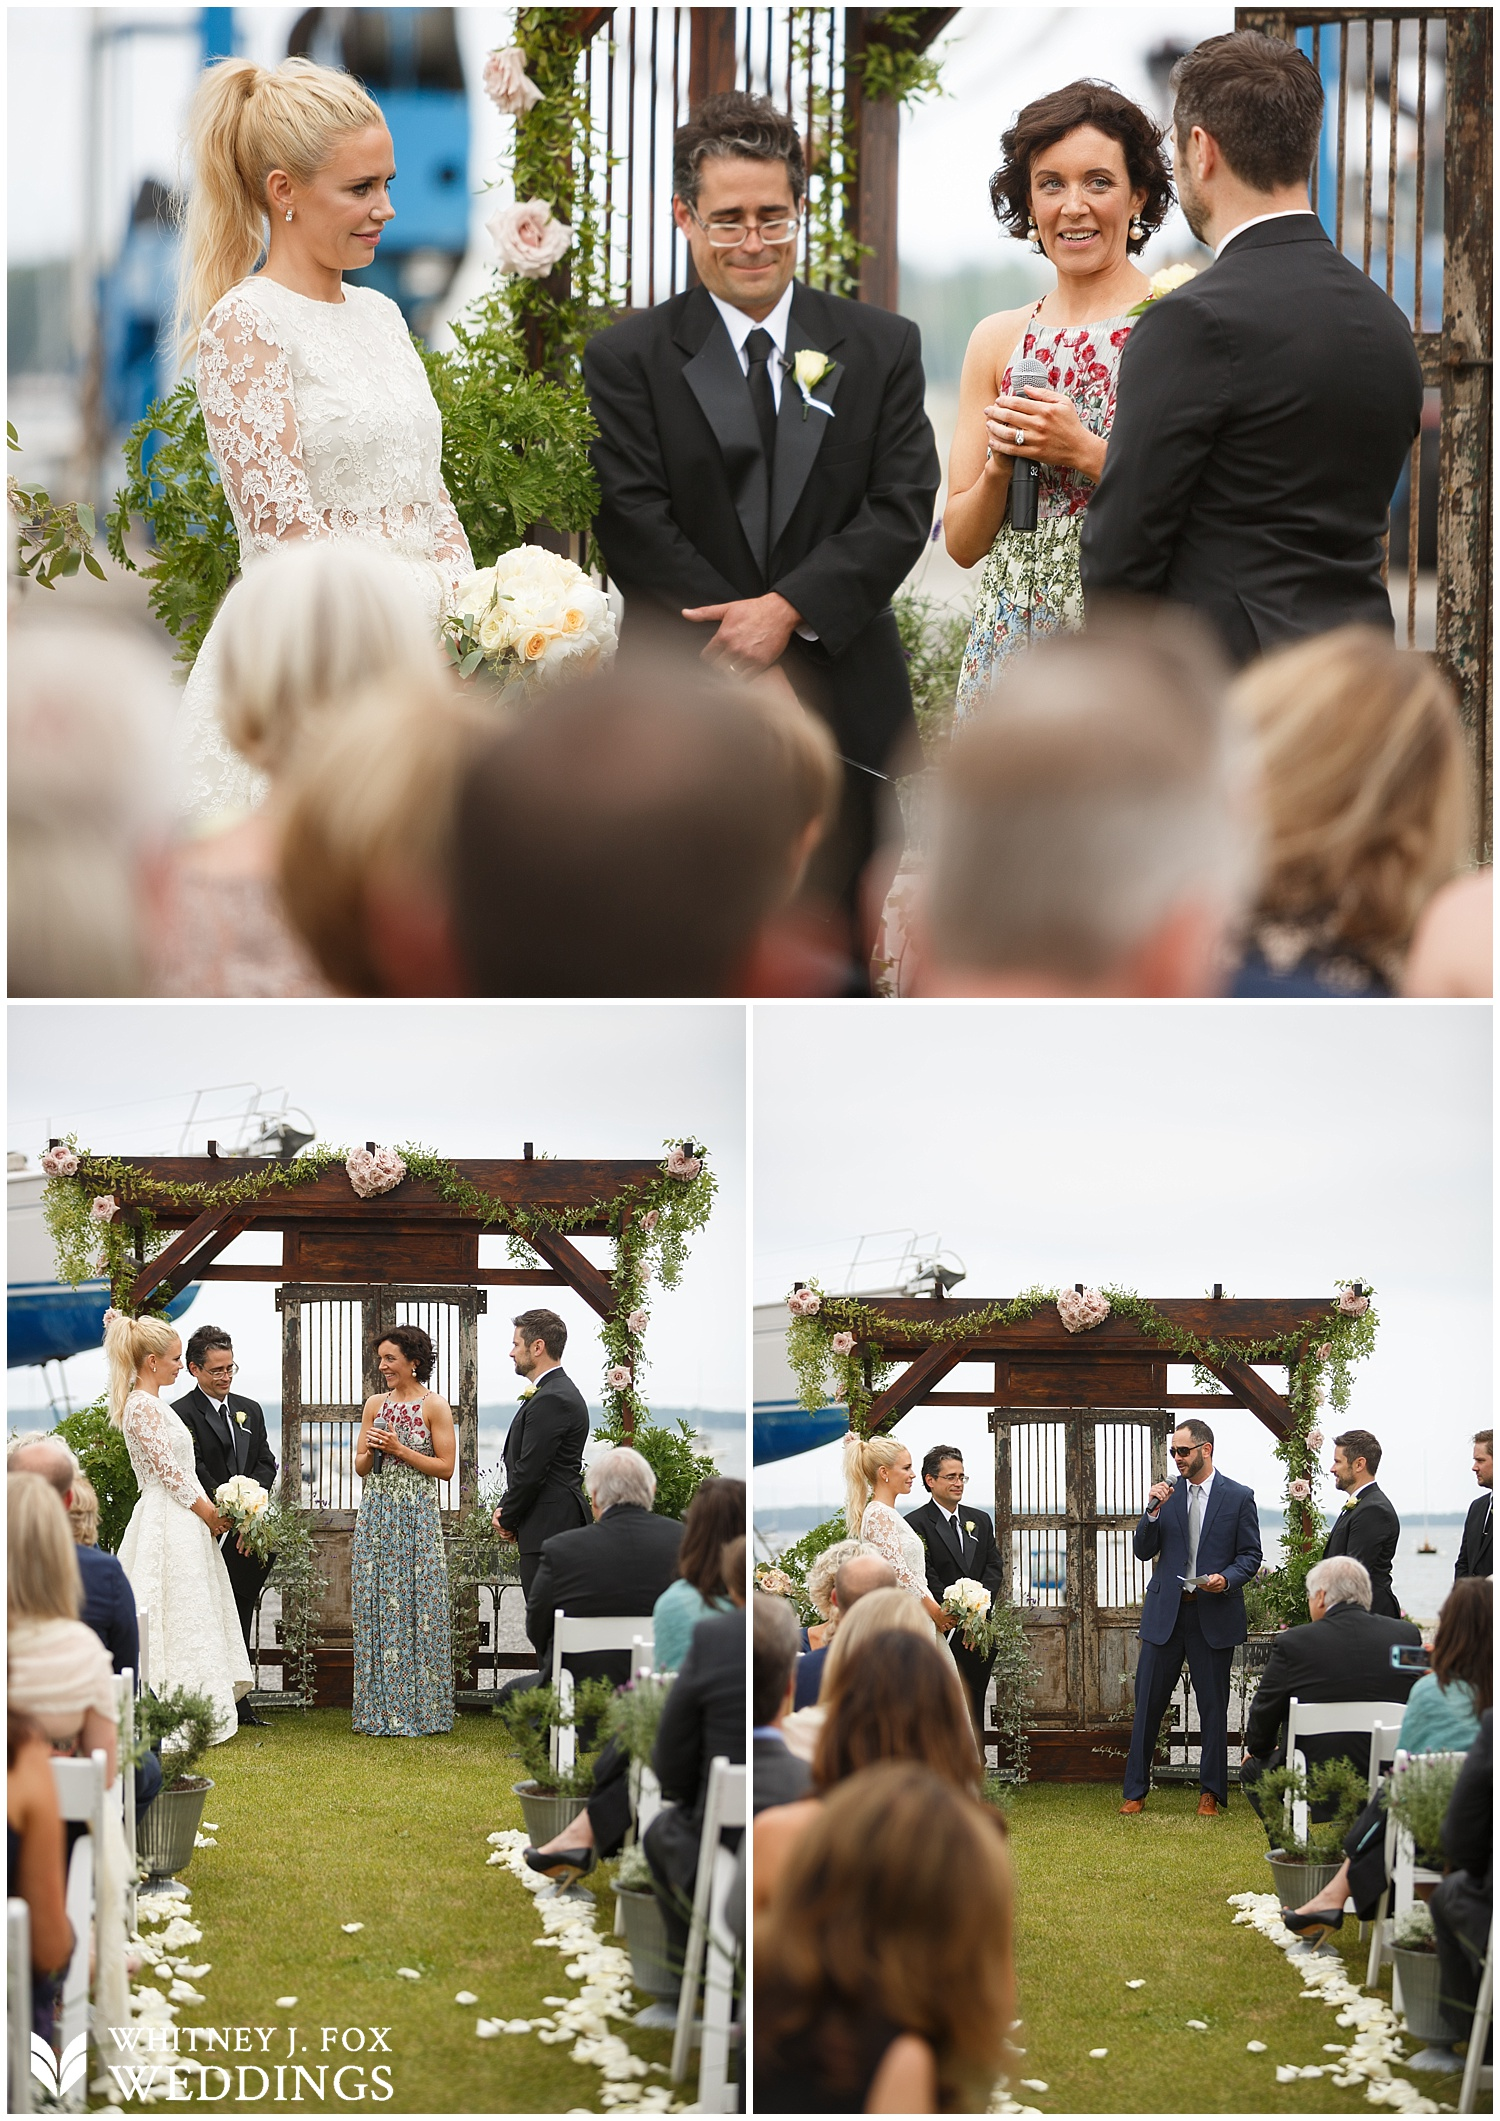 formal_seaside_summer_wedding_dockside_grill_falmouth_maine_photographer_whitney_j_fox_weddings_39.JPG